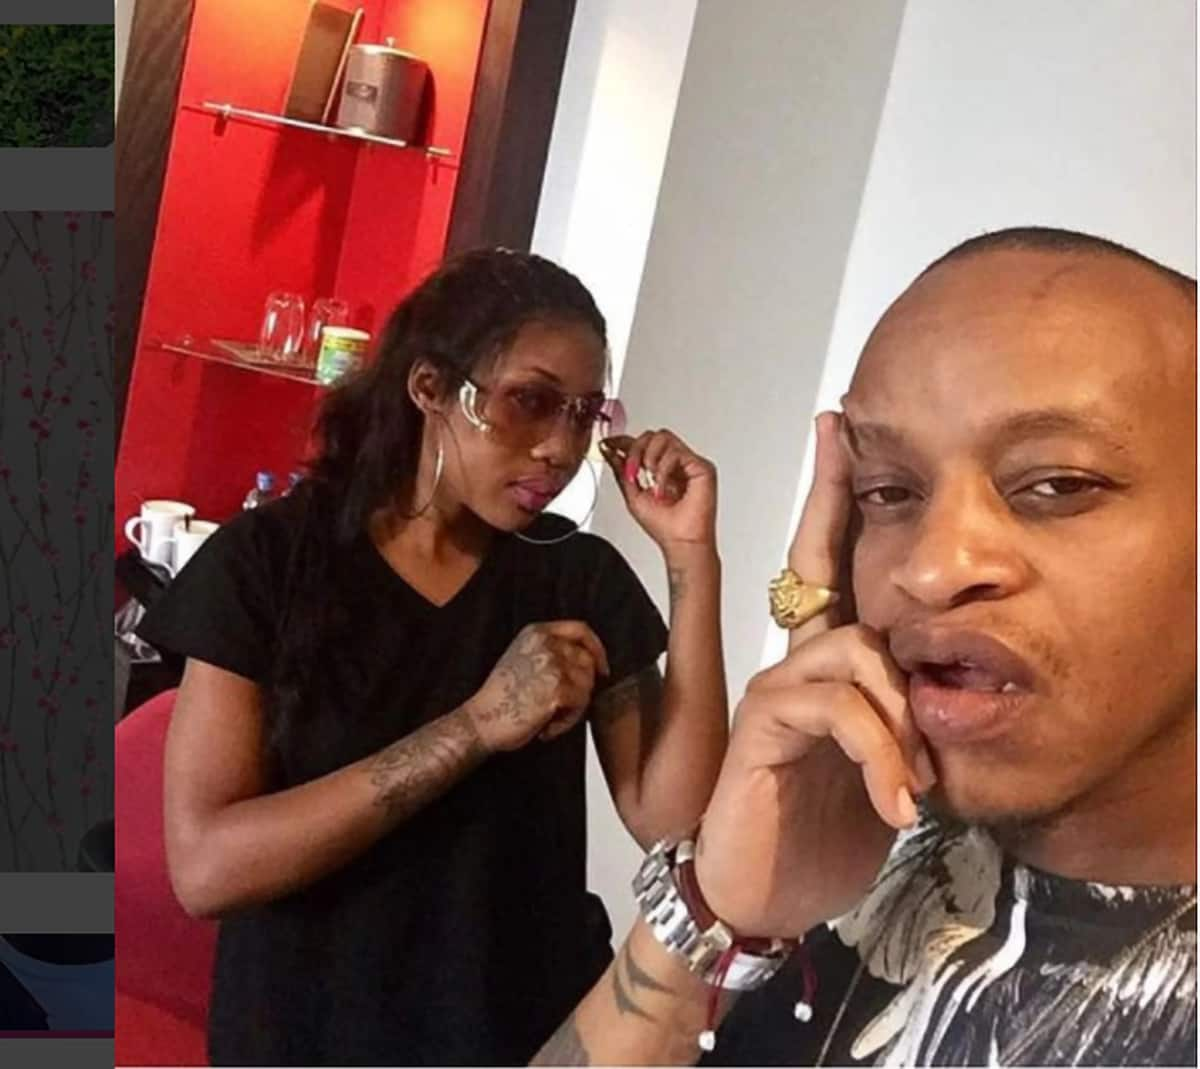 Prezzo's Tanzanian lover whom he was asked to use protection with lands deal with condom company